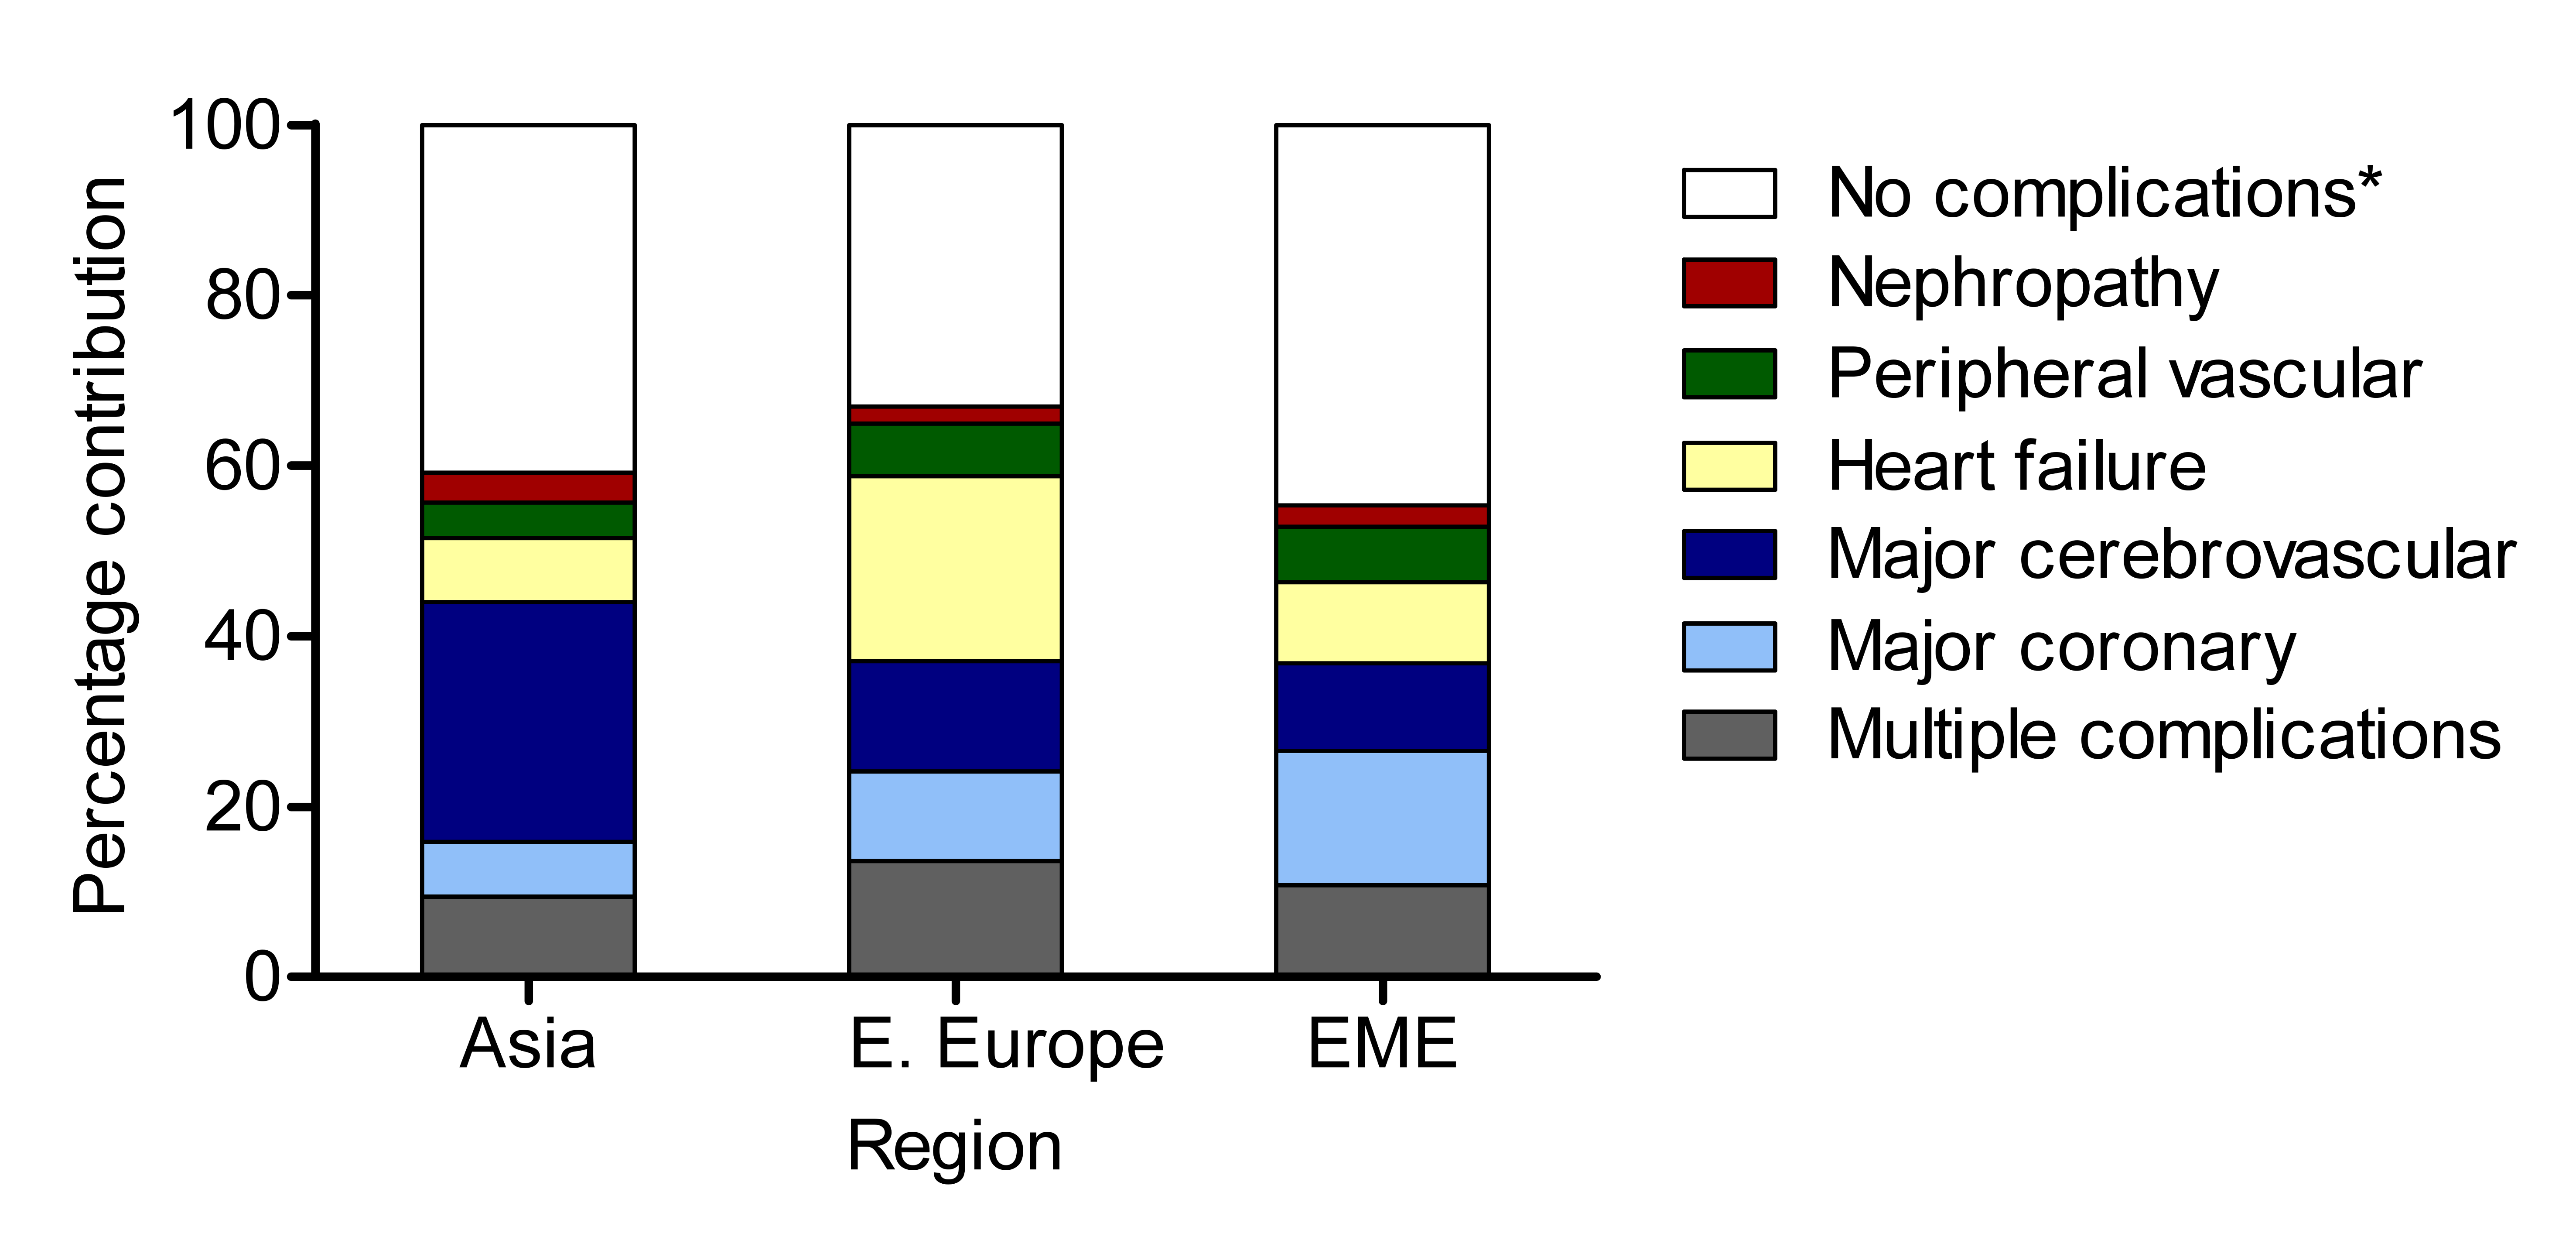 Contributions of specific complications to total hospital use during the ADVANCE study, by region.